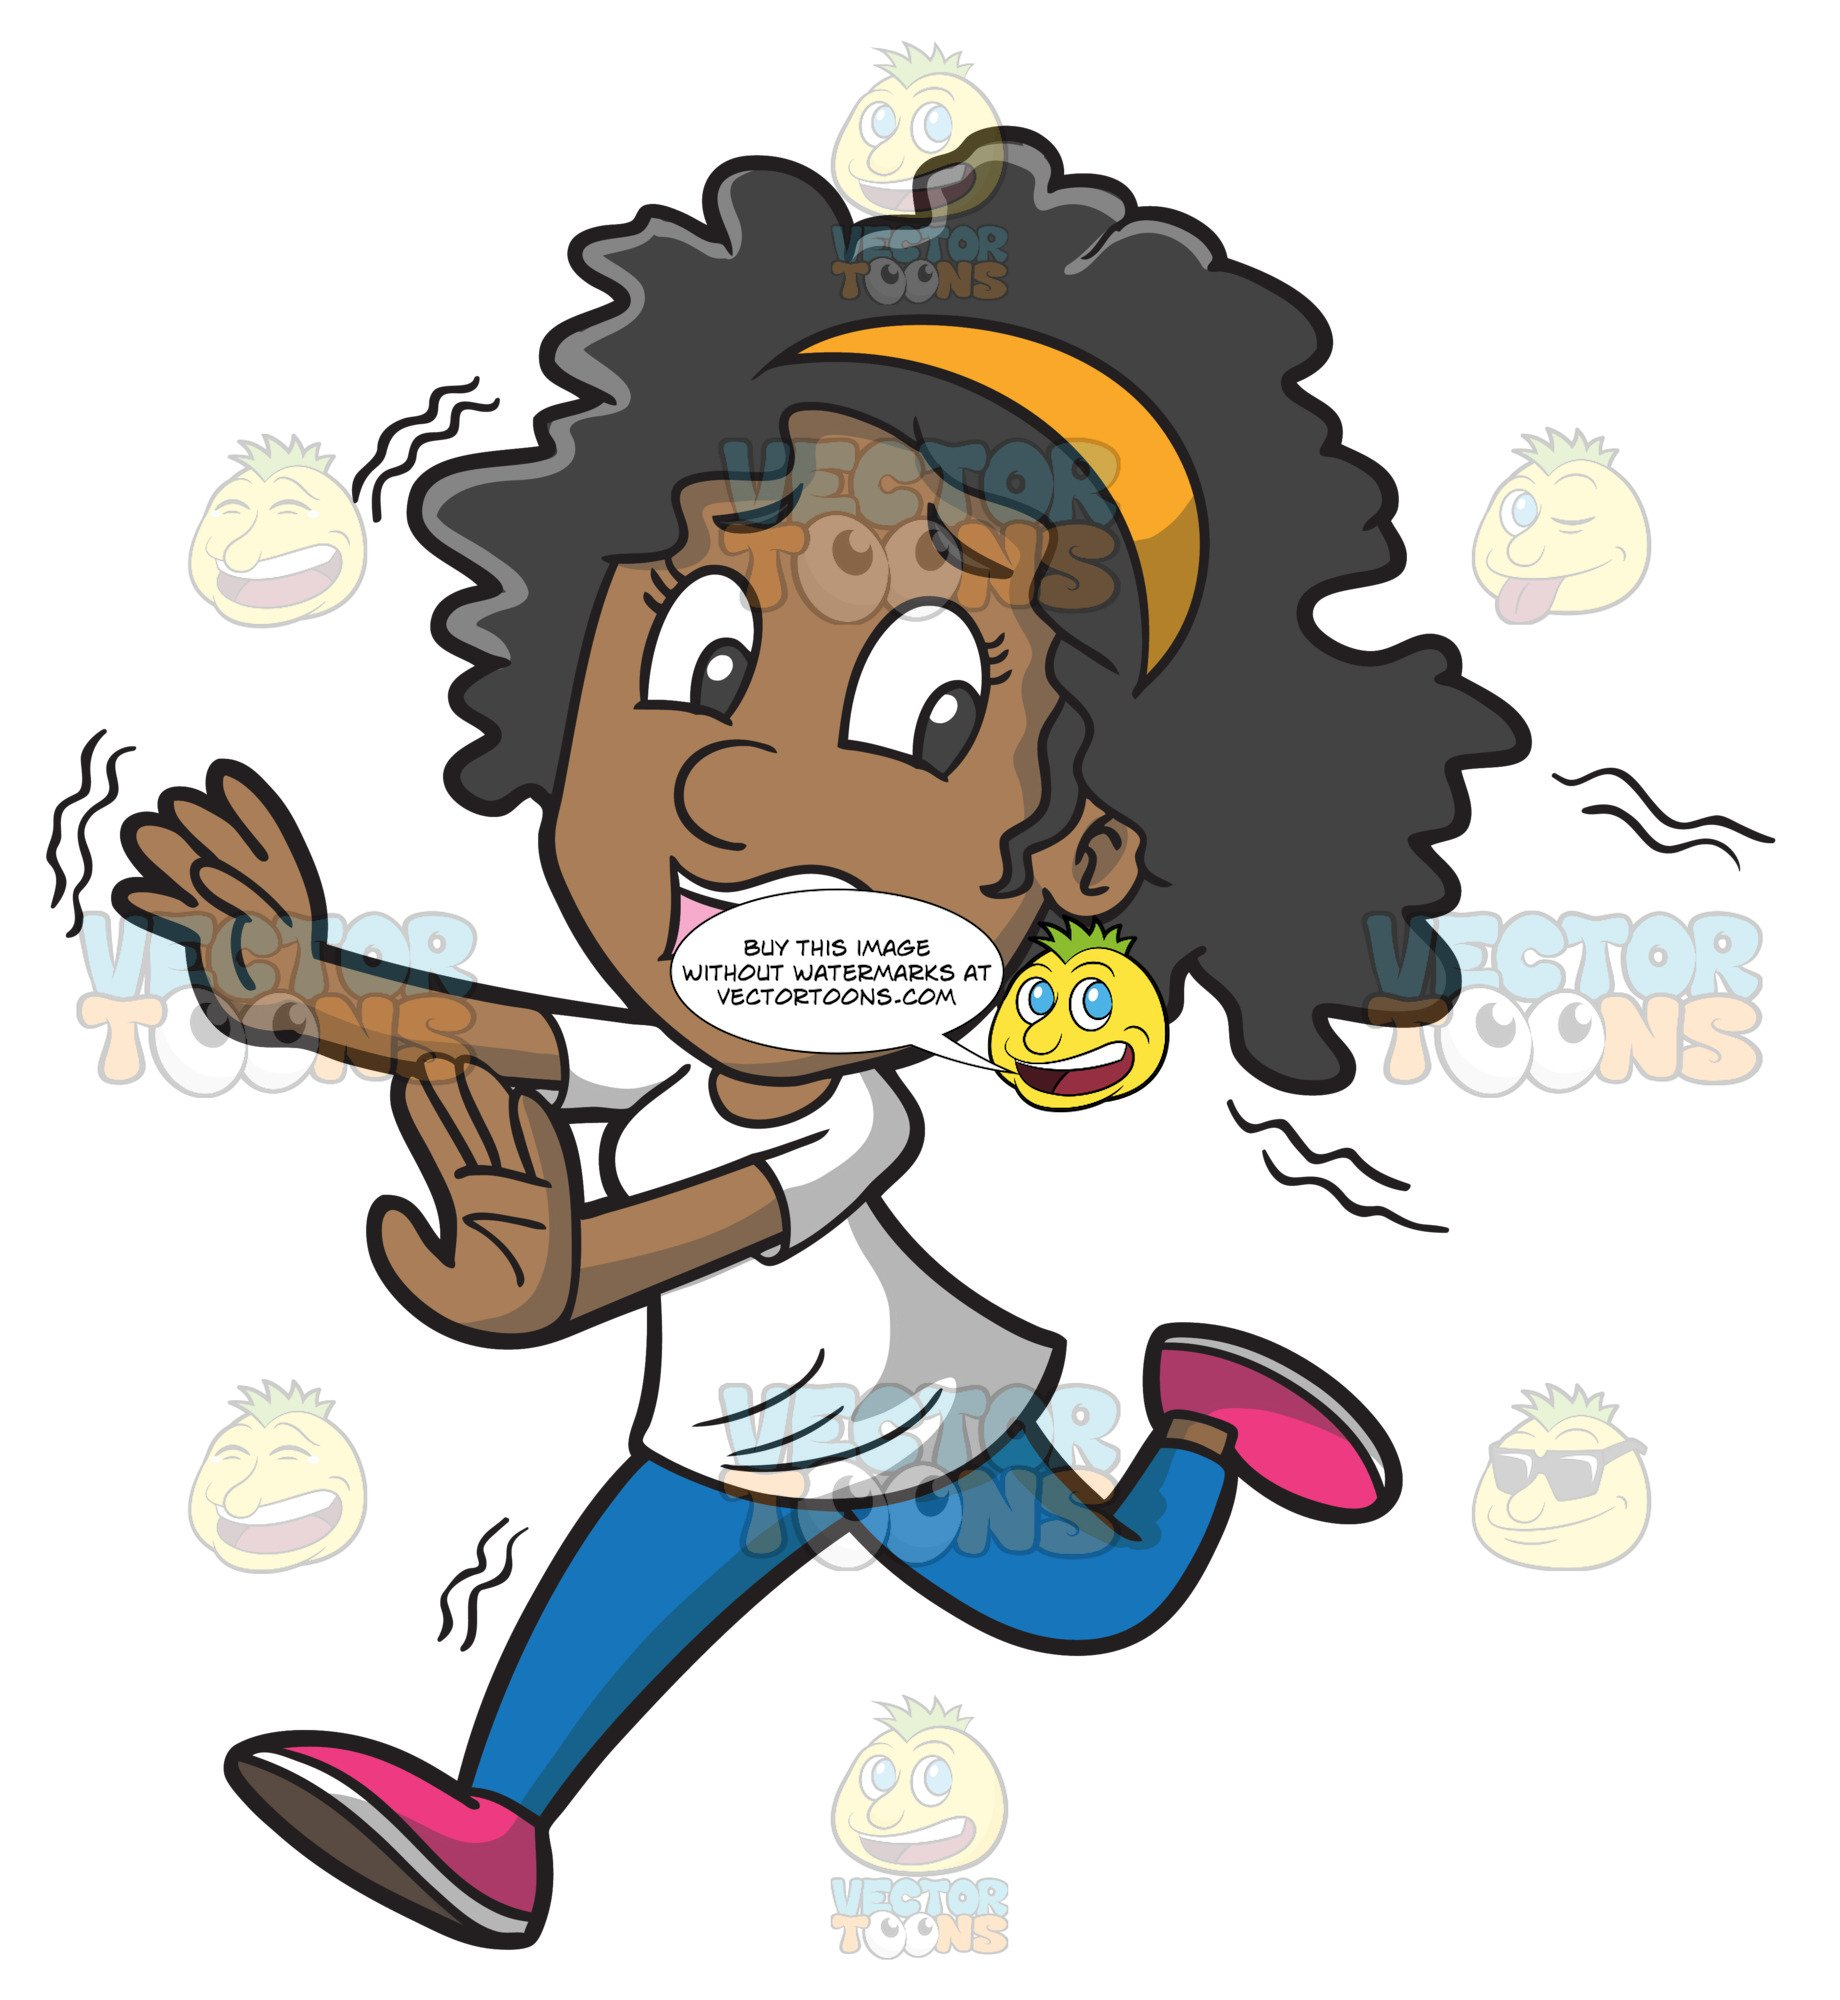 A Fearful Black Woman Running Away From Something.